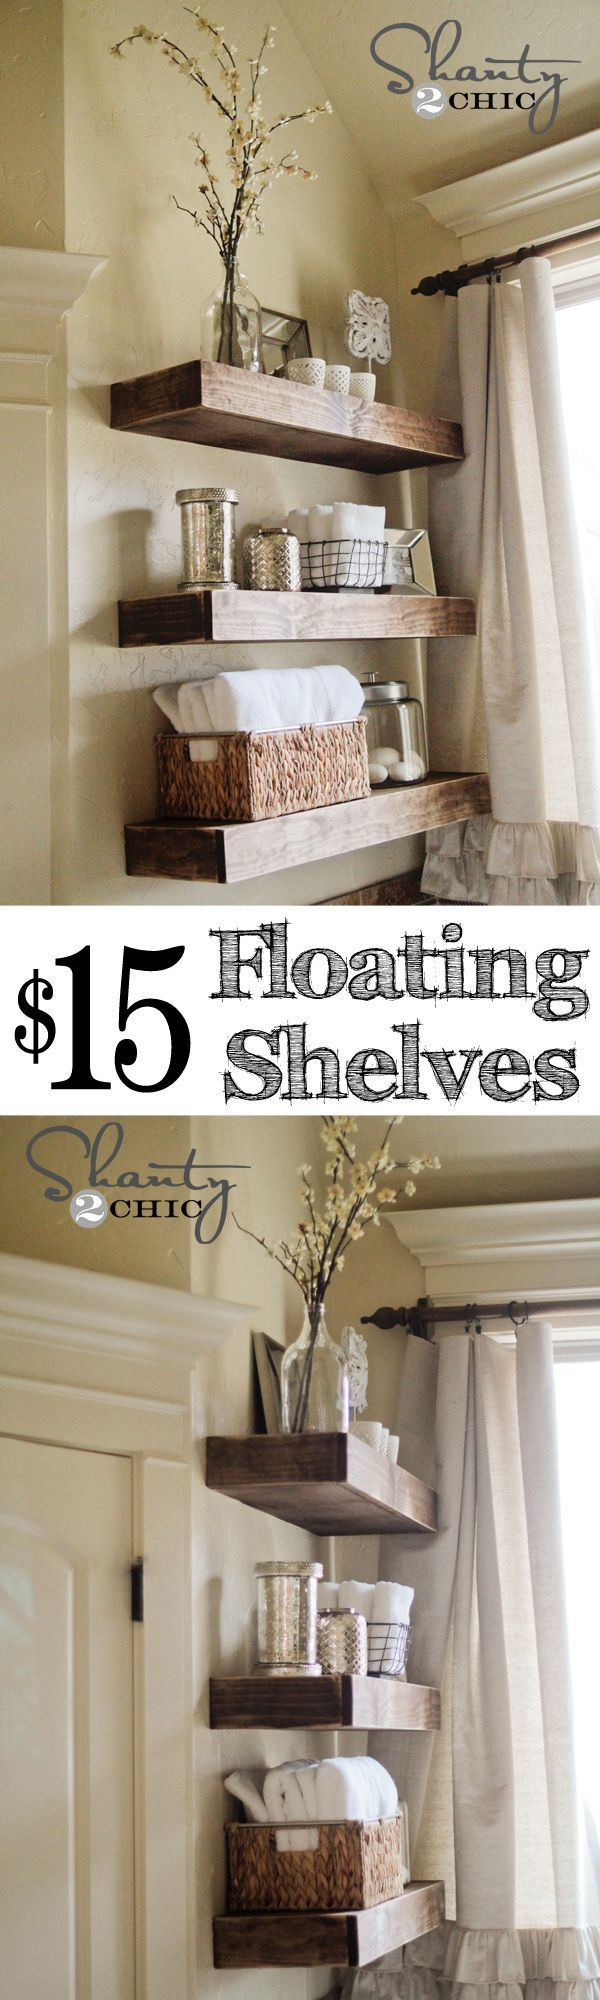 Basement window treatments ideas - Super Cute Diy Floating Shelves For My Bathroom Also Window Treatment